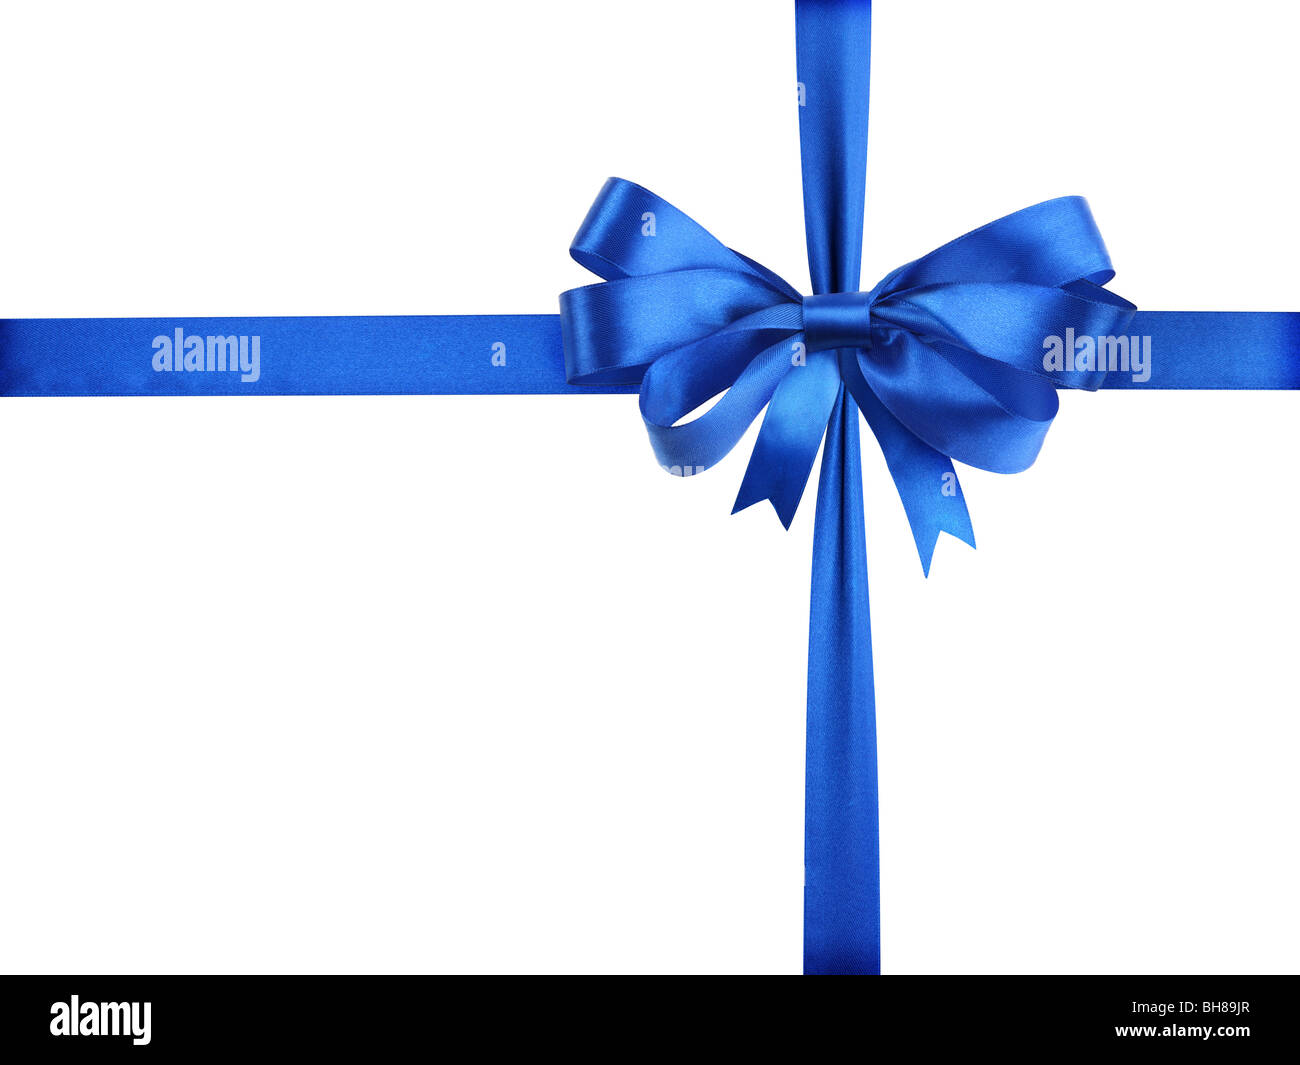 blue ribbon with a bow as a gift on a white background - Stock Image